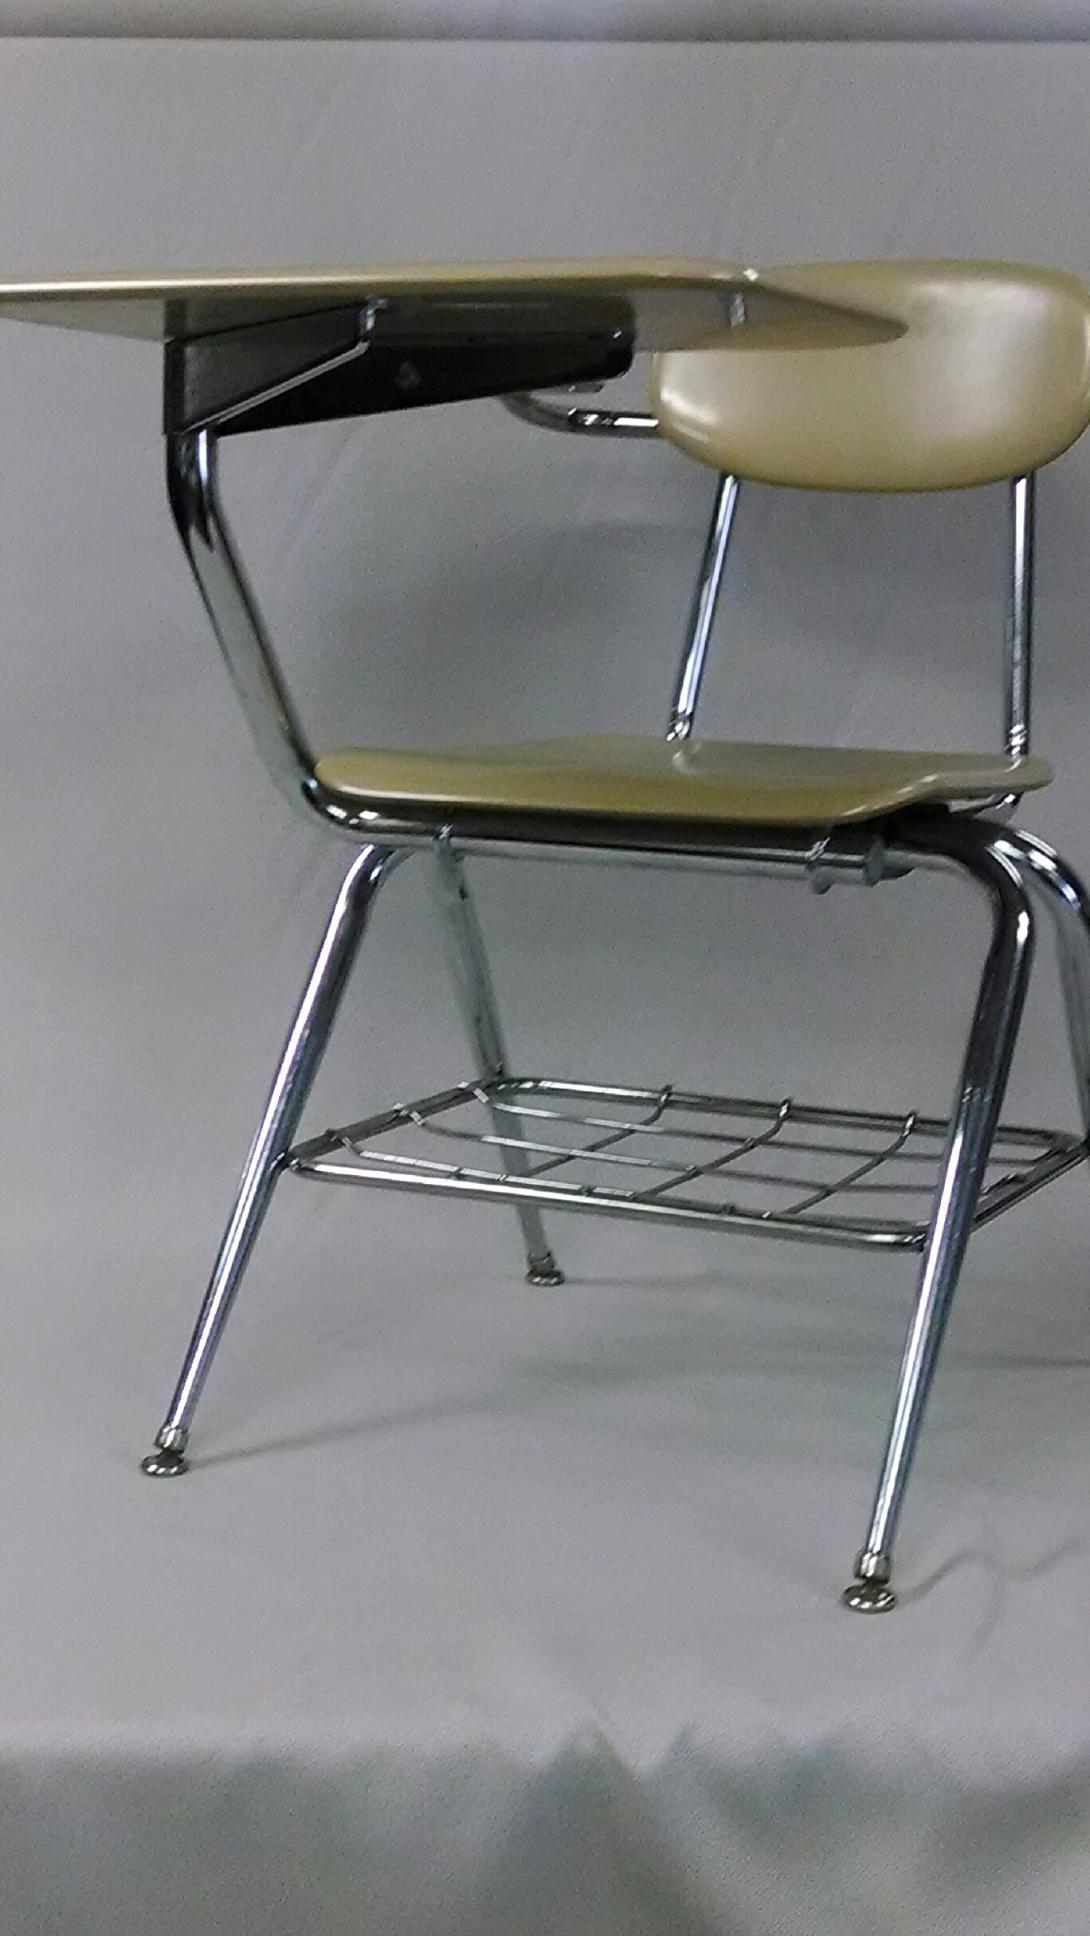 office chairs unlimited kampa chair accessories student furniture 2014 07 22 10 20 42